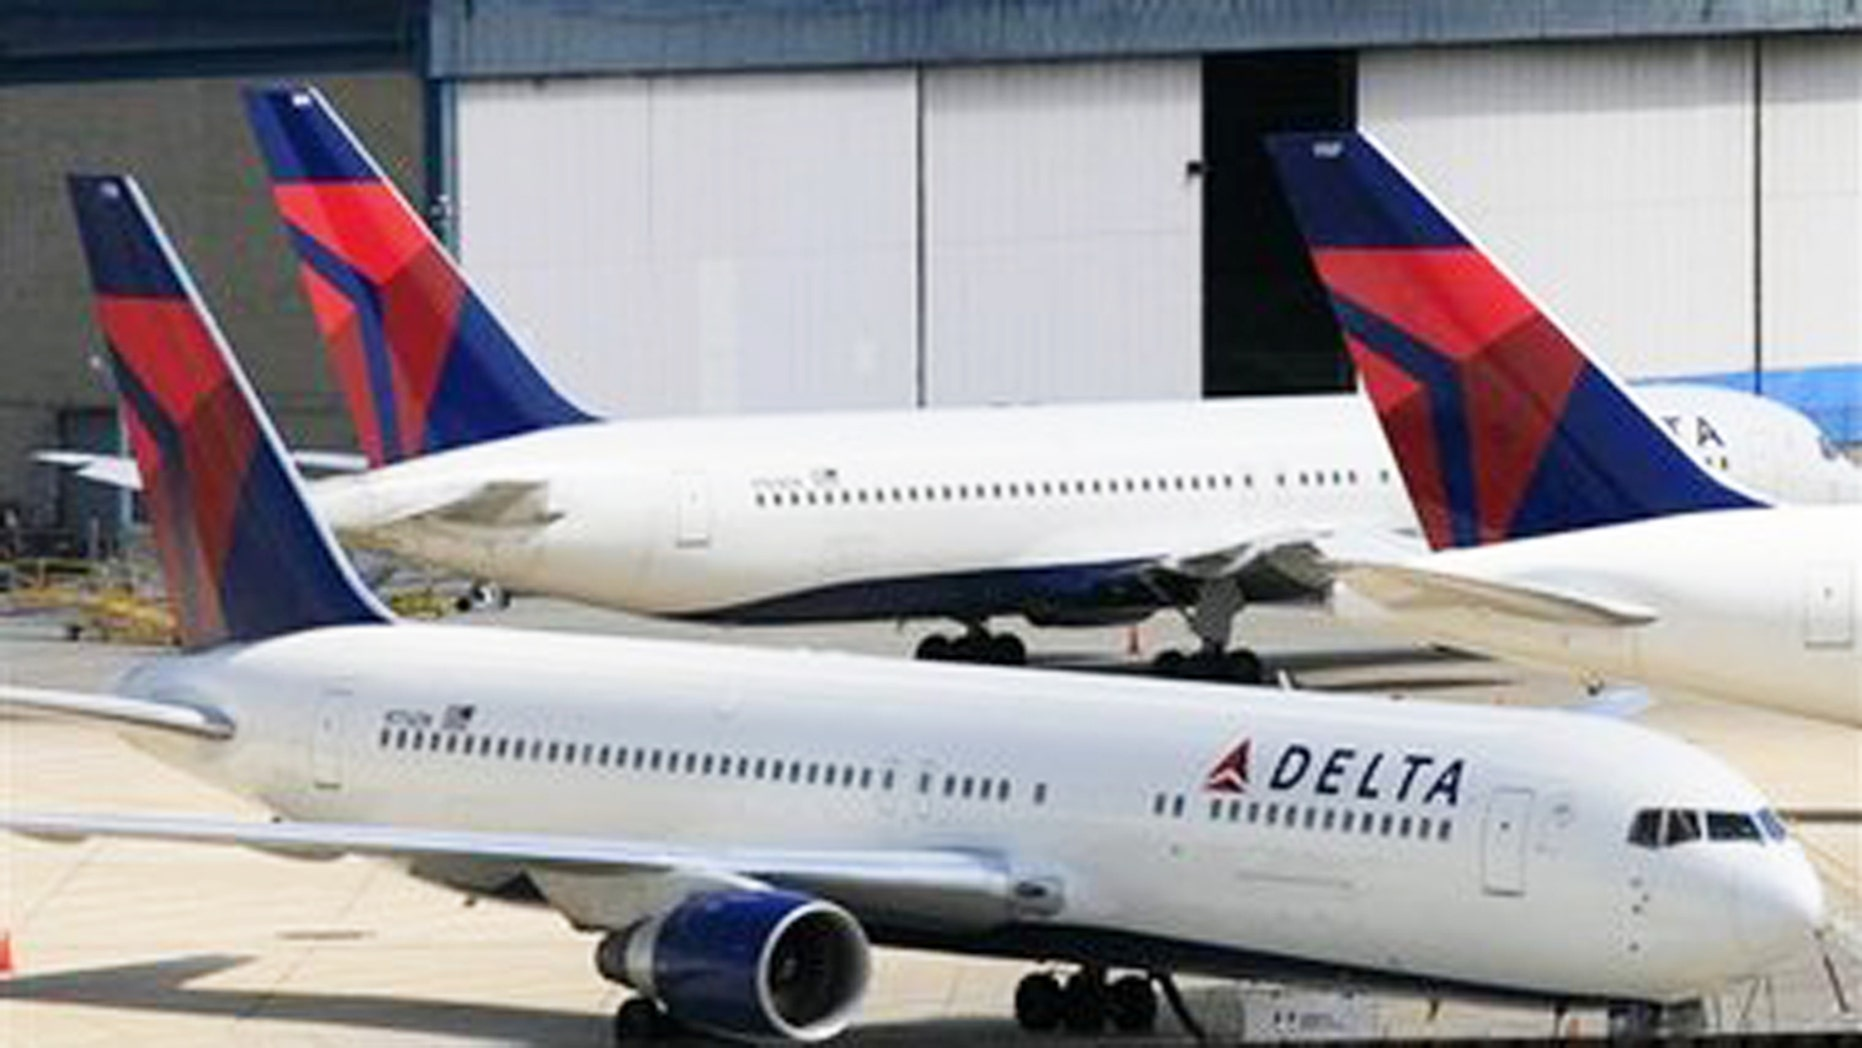 Flying Delta? You'll probably get to your destination on time.